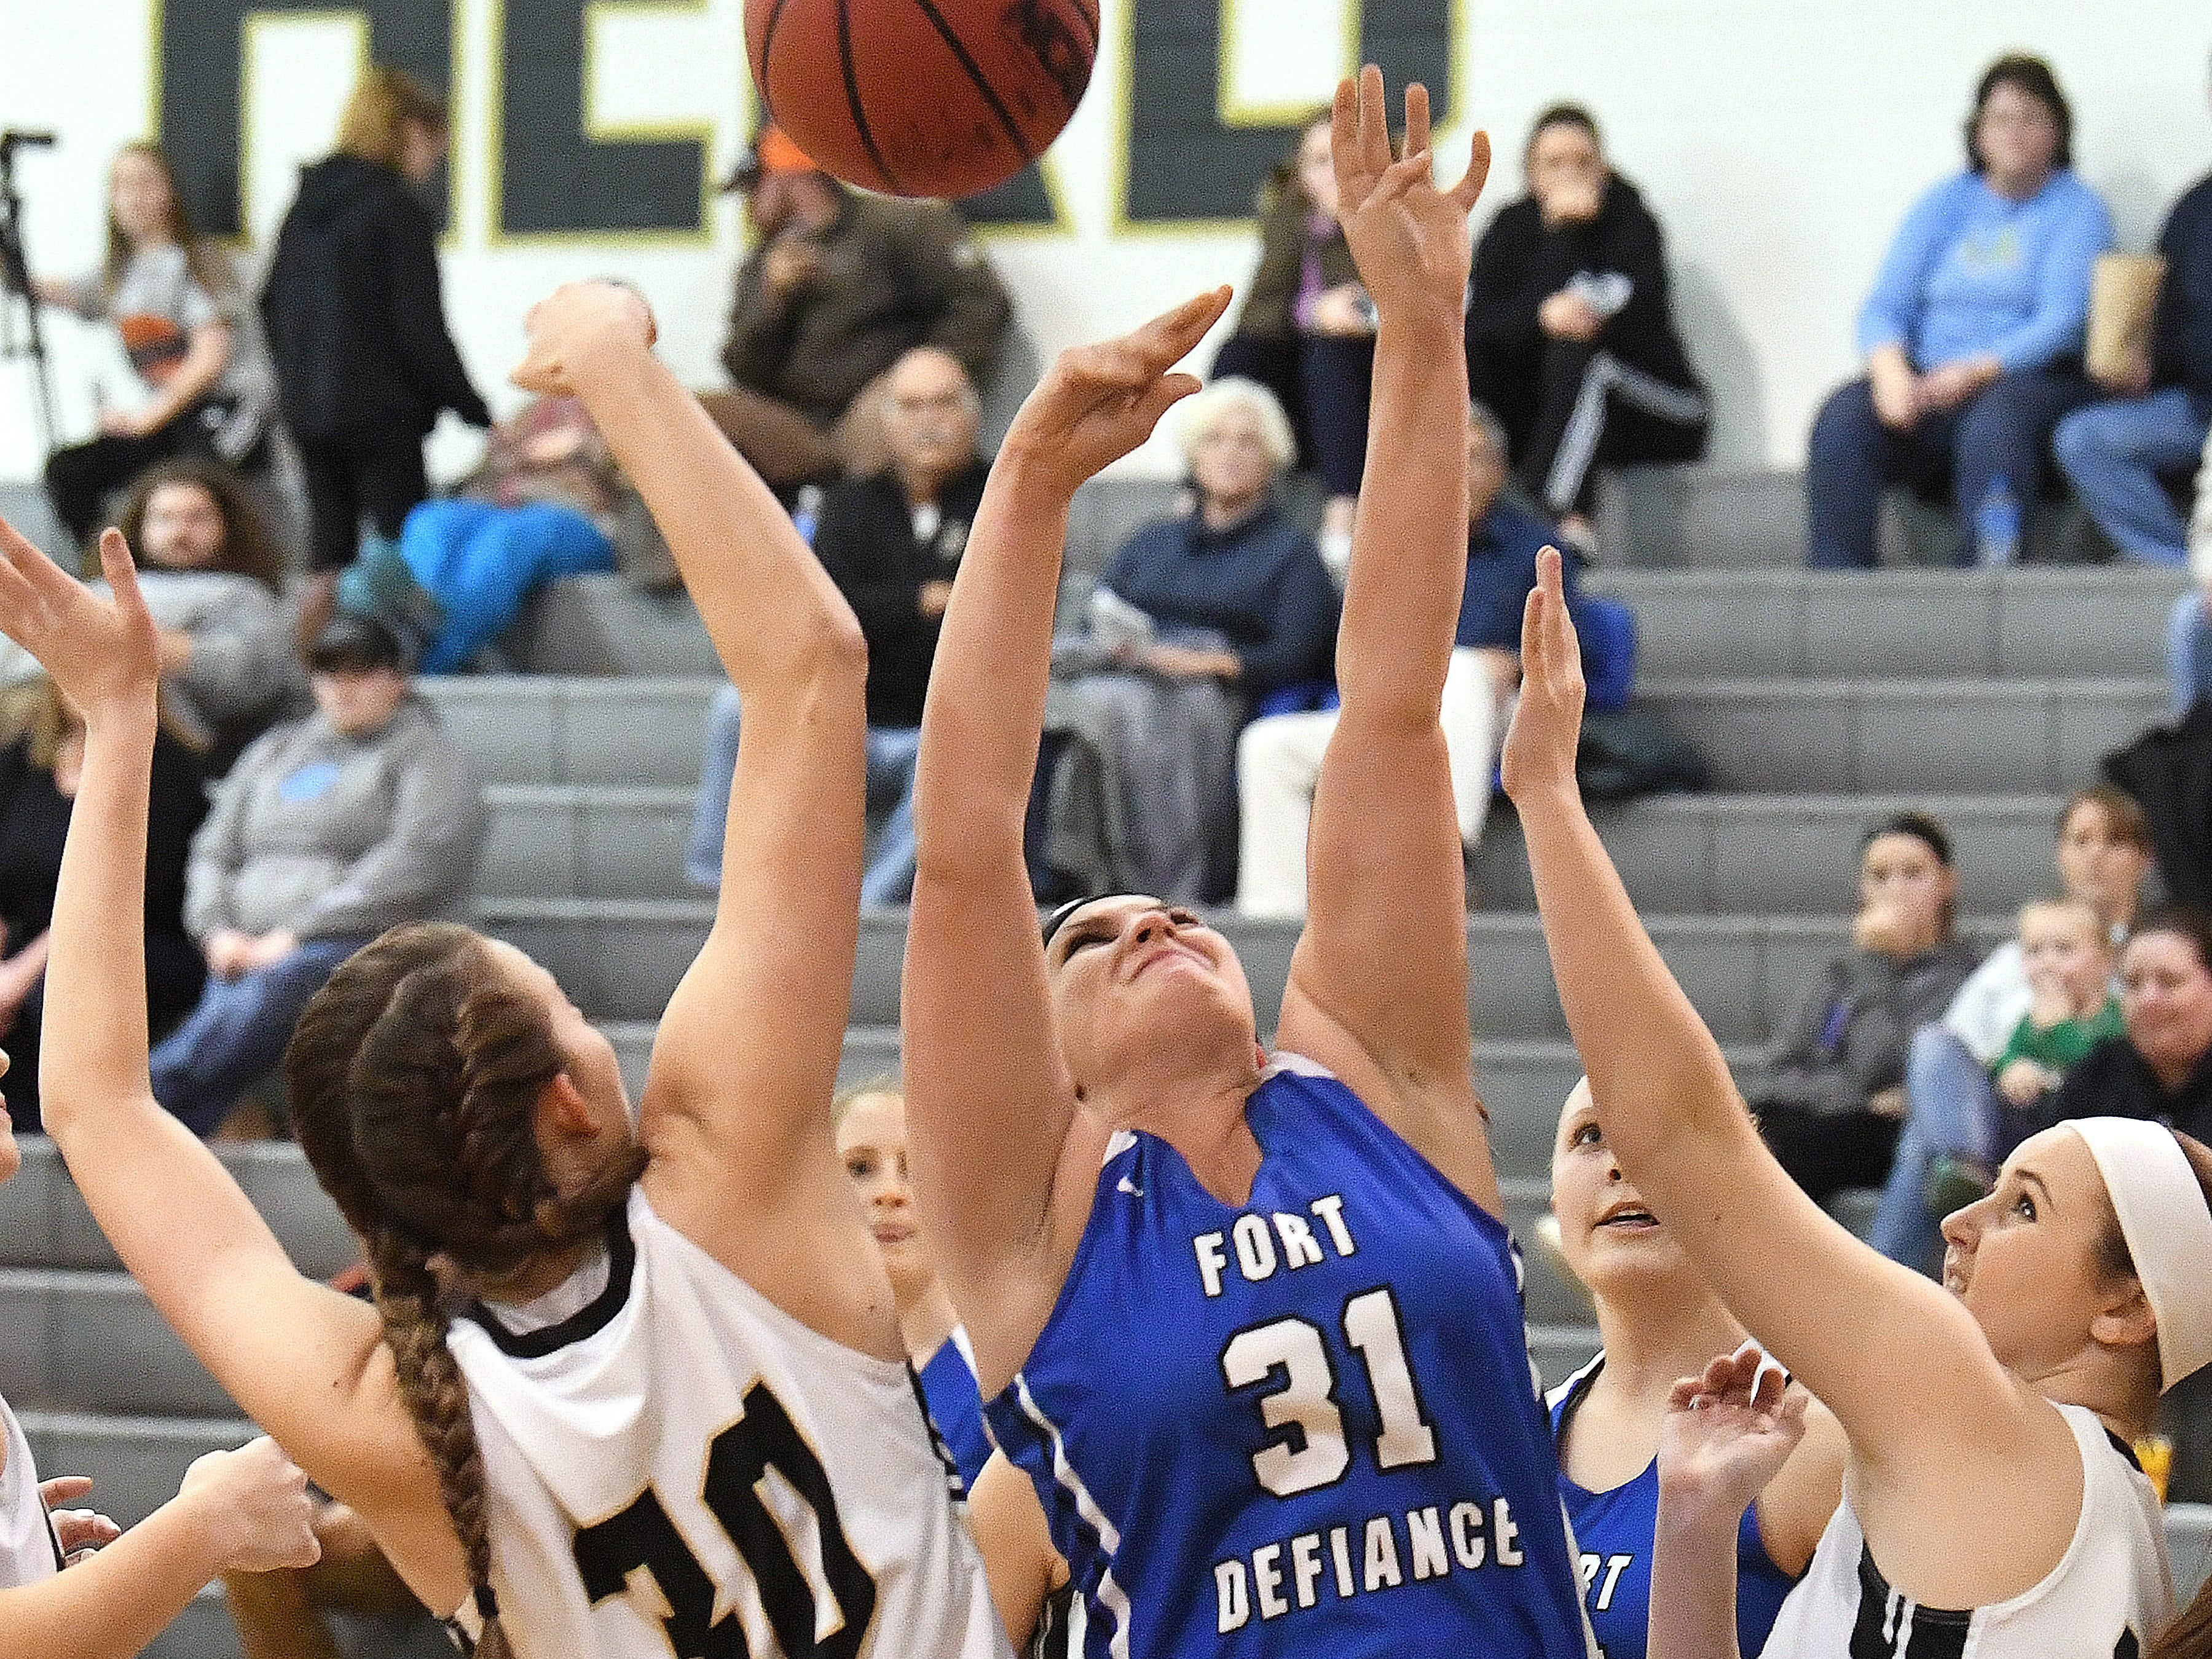 Fort Defiance's Meredith Lloyd (center) shoots during a game played in Swoope on Wednesday, Dec. 5, 2018.